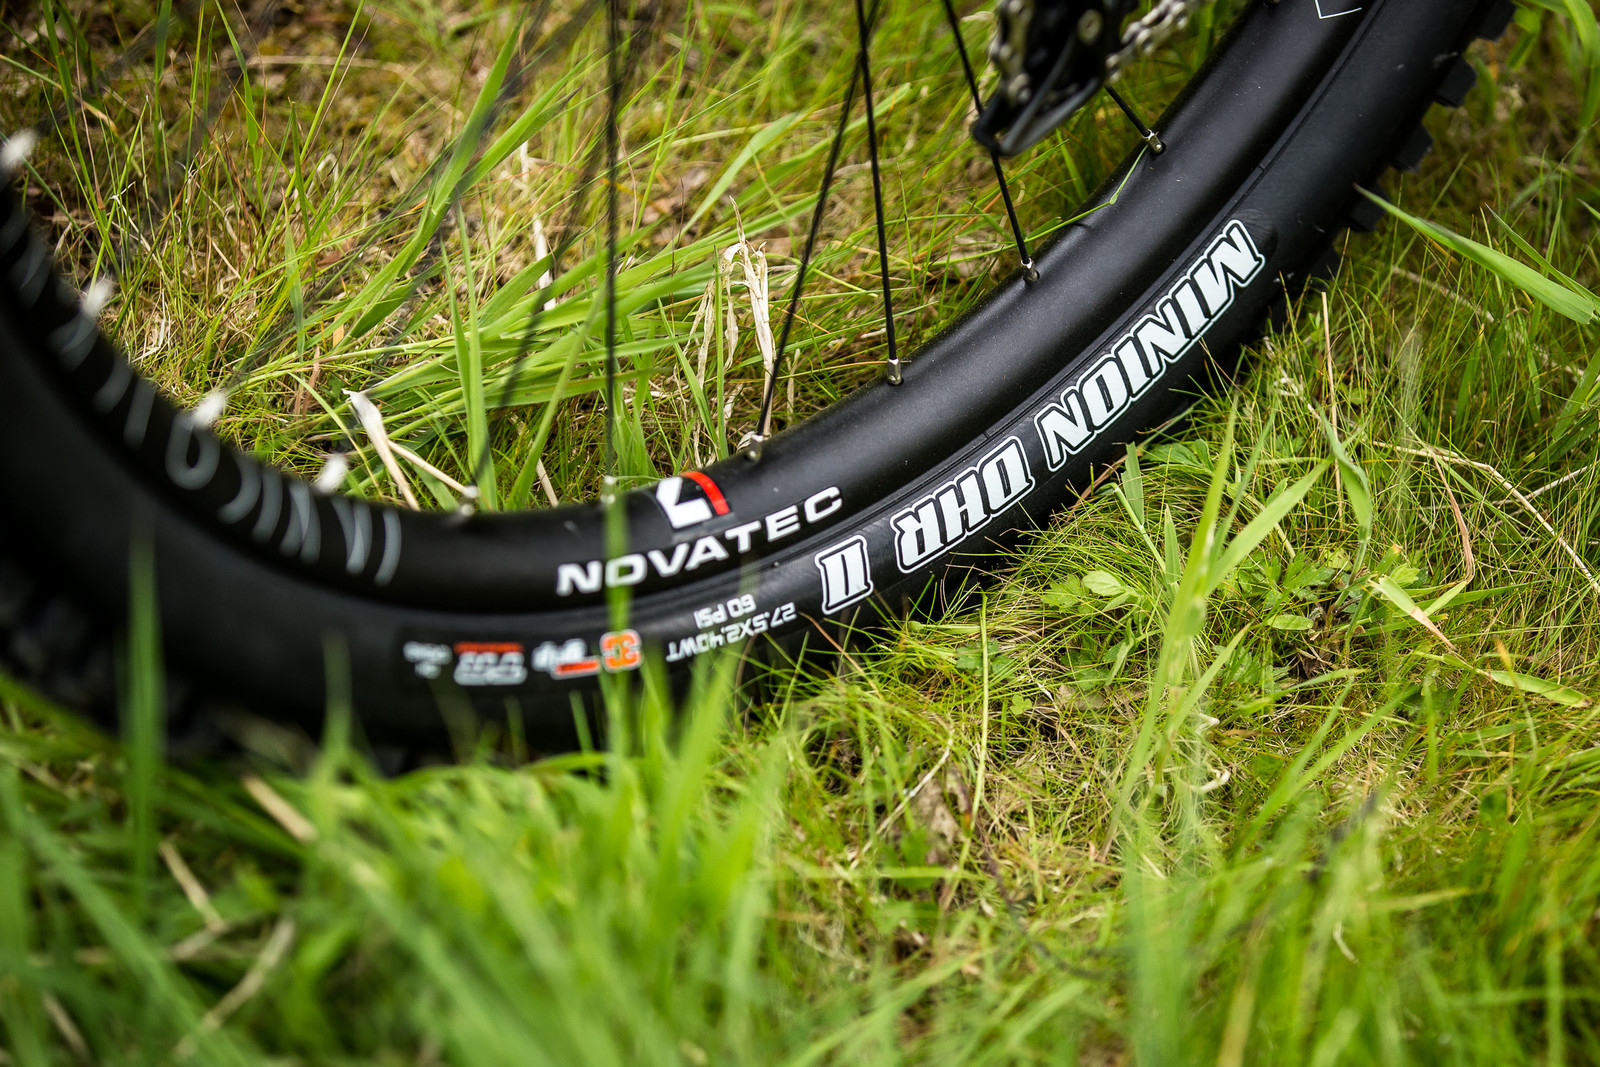 Novatec Wheels with Maxxis Minion DHR II 27.5 x 2.4 WT Tires - Connor Fearon's Kona Supreme Operator for Fort William - Mountain Biking Pictures - Vital MTB